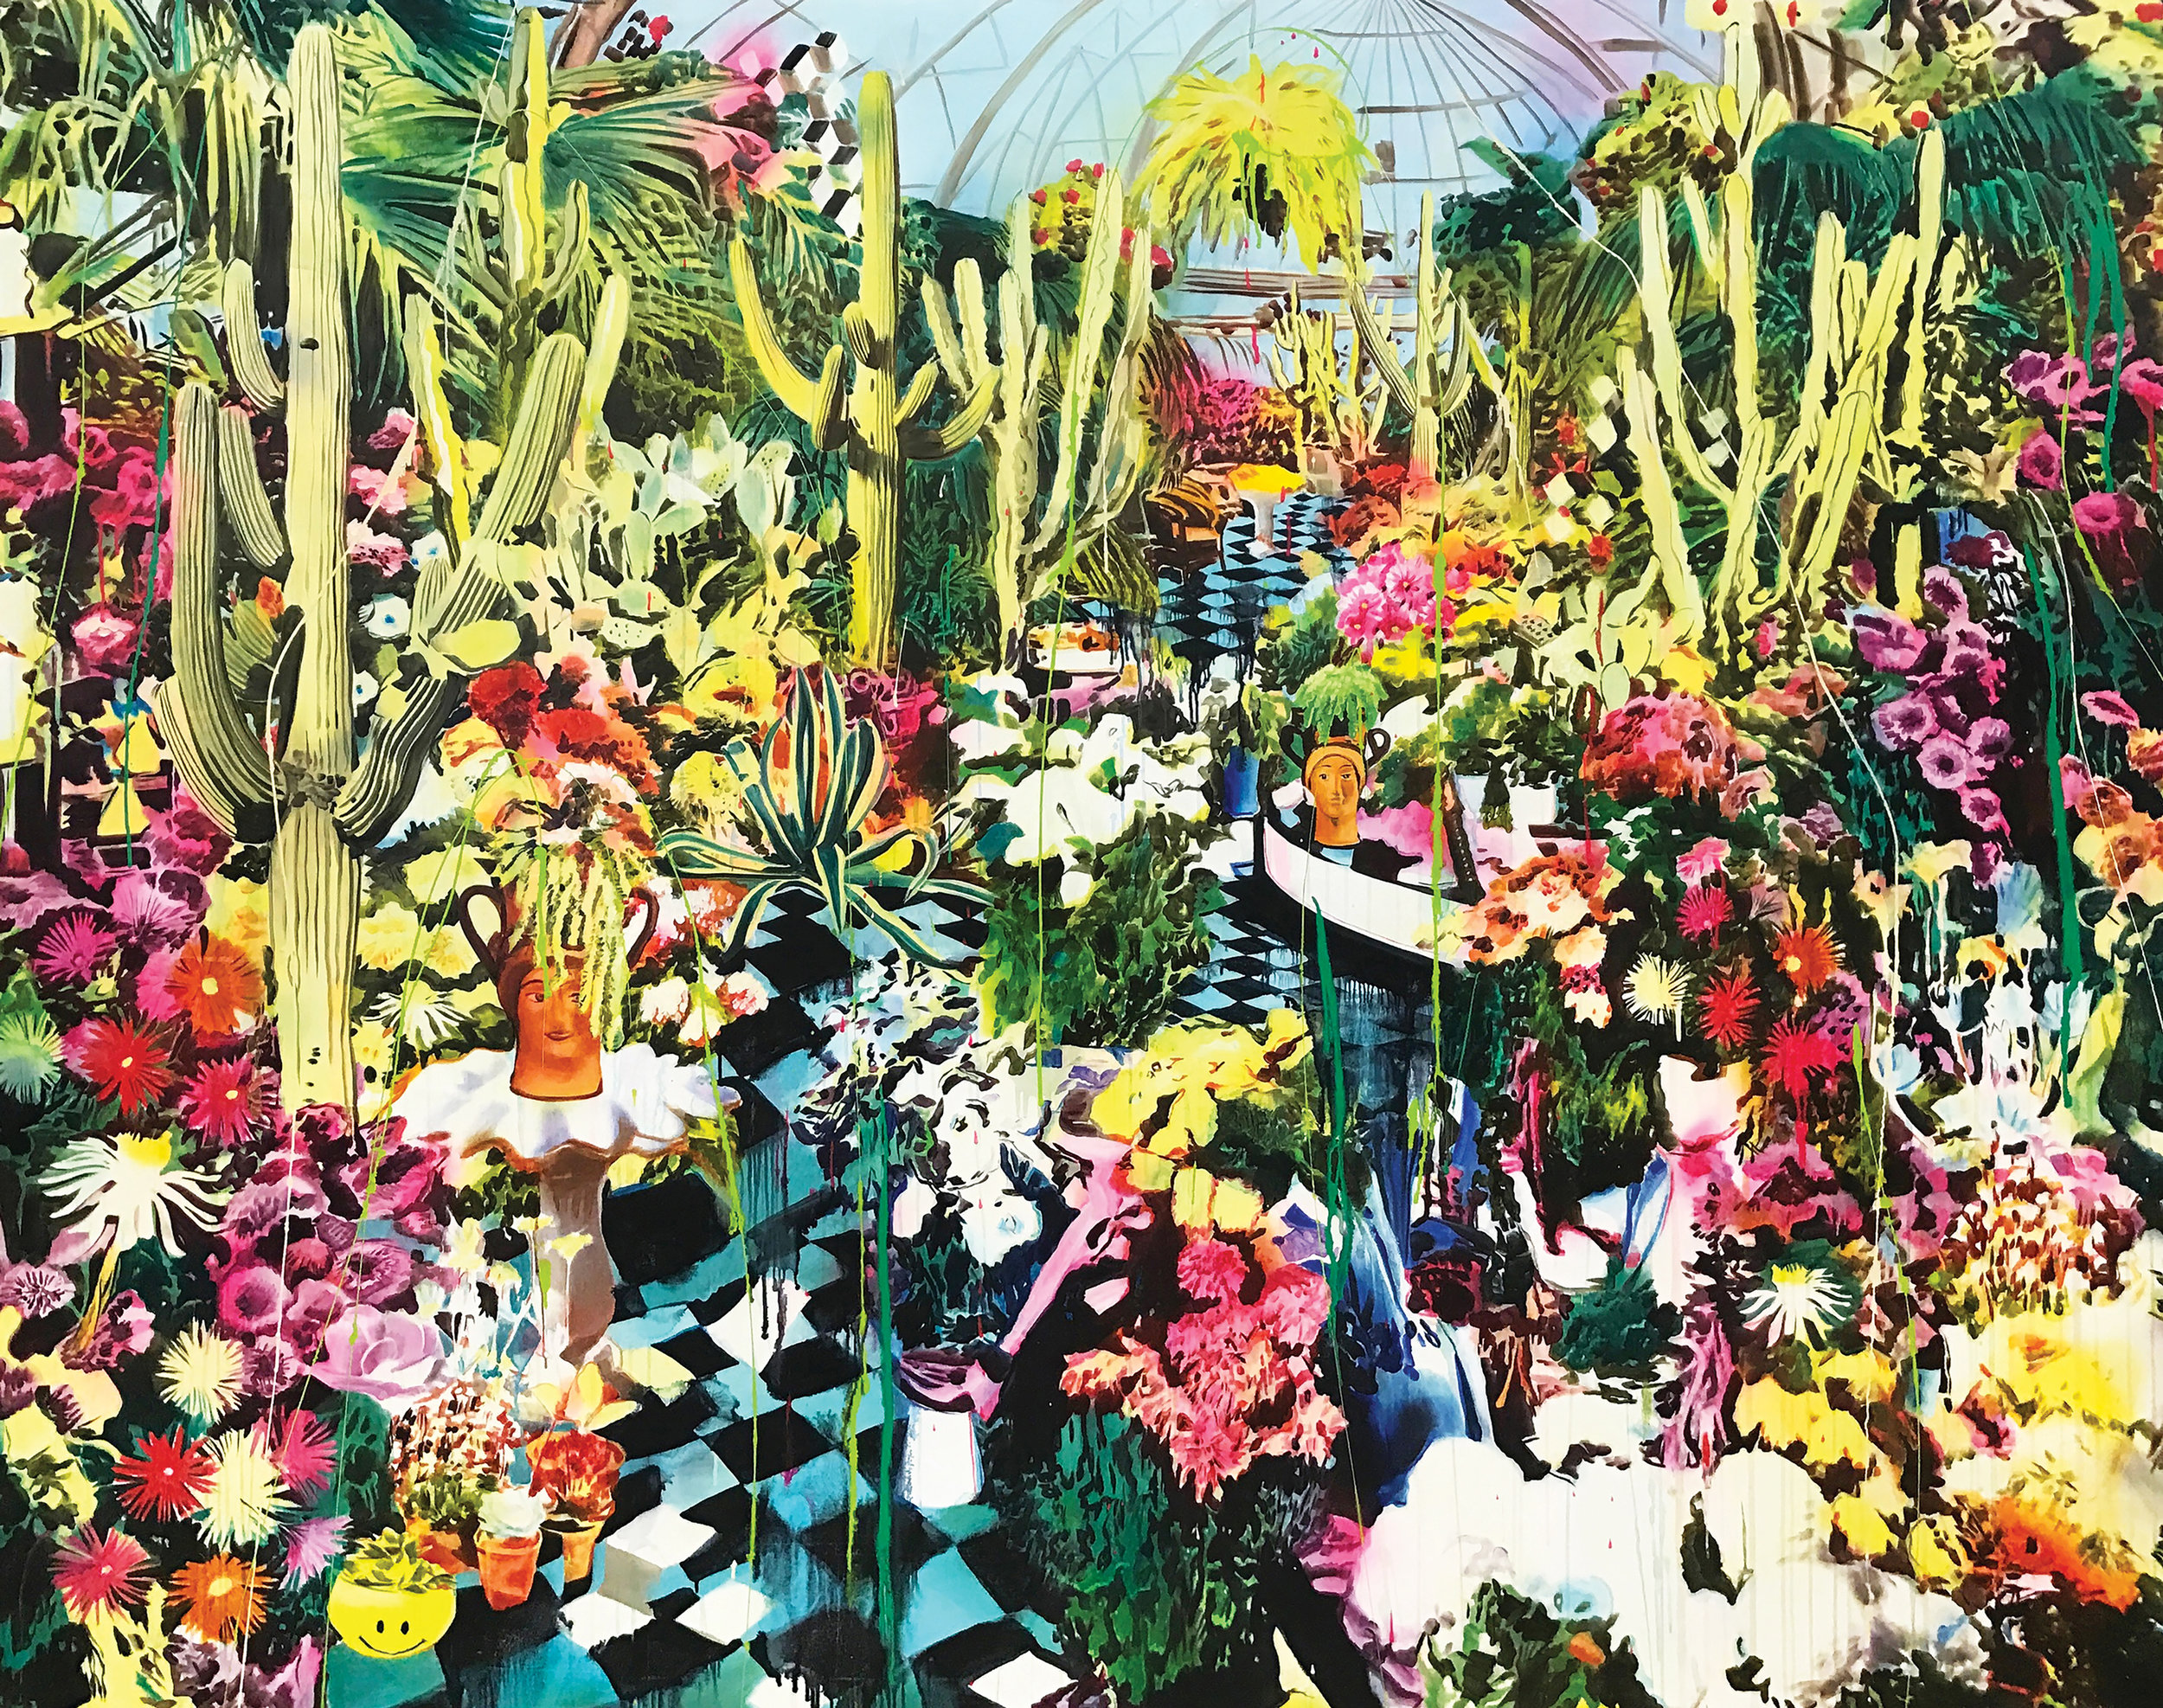 Rosson Crow  -  Belle Isle Conservatory , 2018 Acrylic, spray-paint, photo transfer, oil, and enamel on canvas 87h x 110w inches